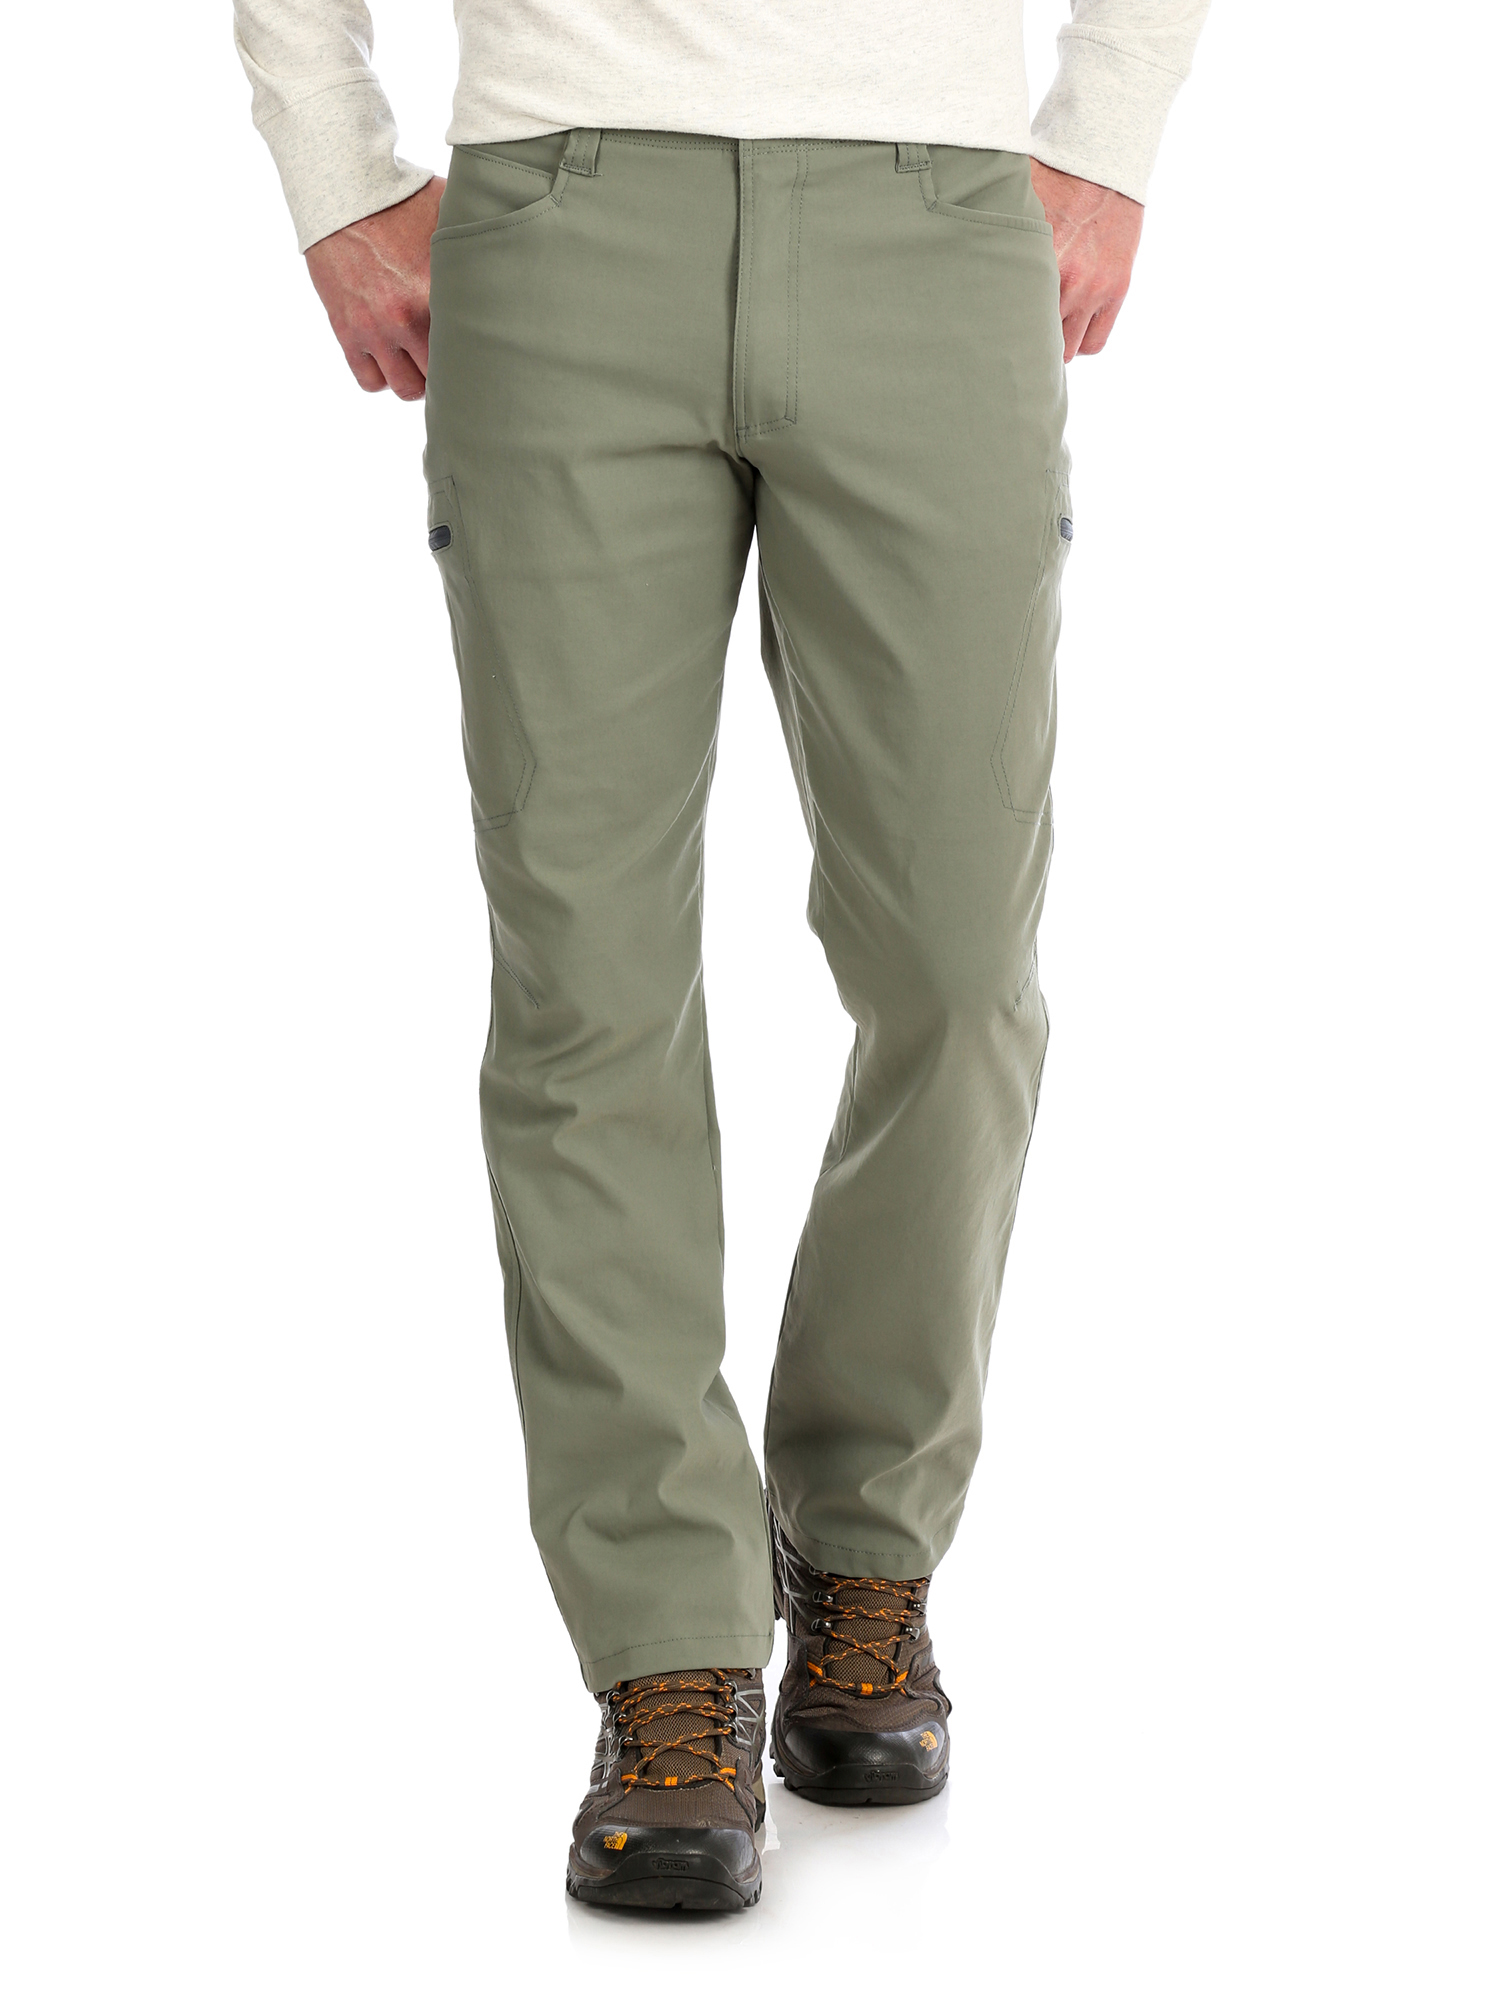 Big Men's Outdoor Comfort Flex Cargo Pant